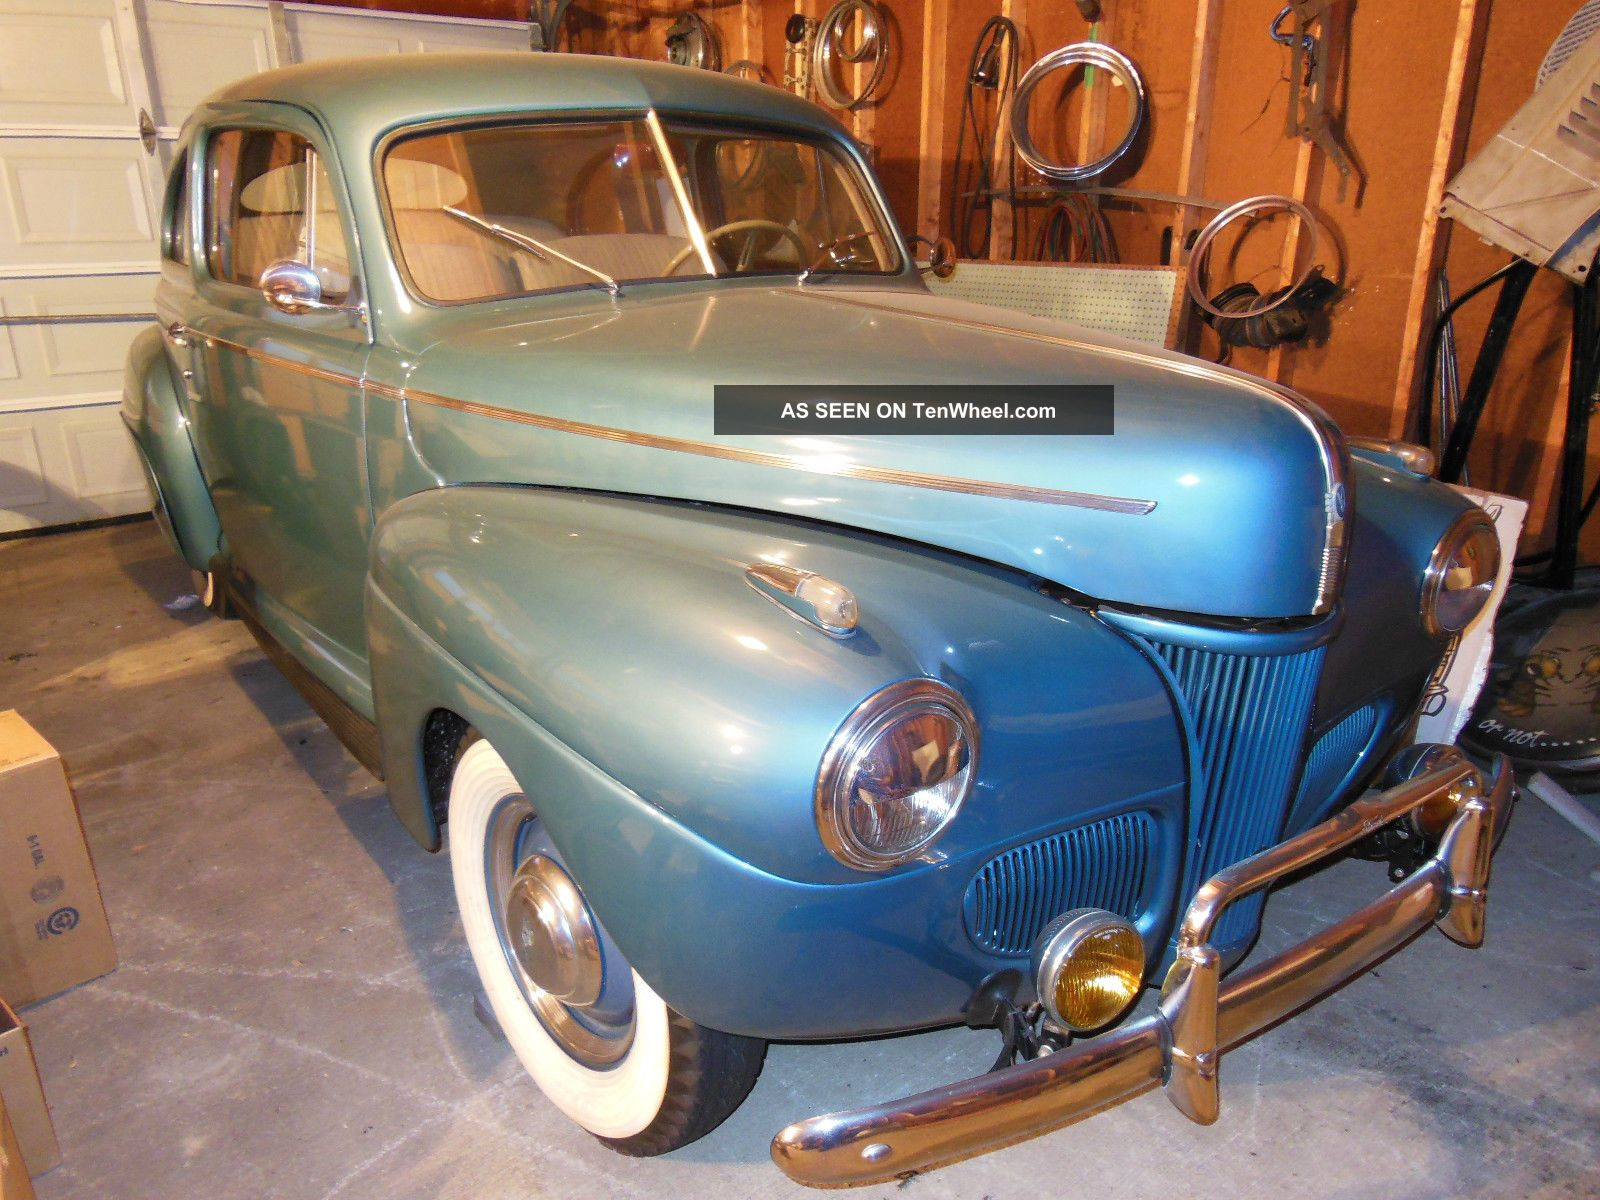 1941 Ford Sedan V8 Flat Head Motor Clear Title 90hp All. Other photo